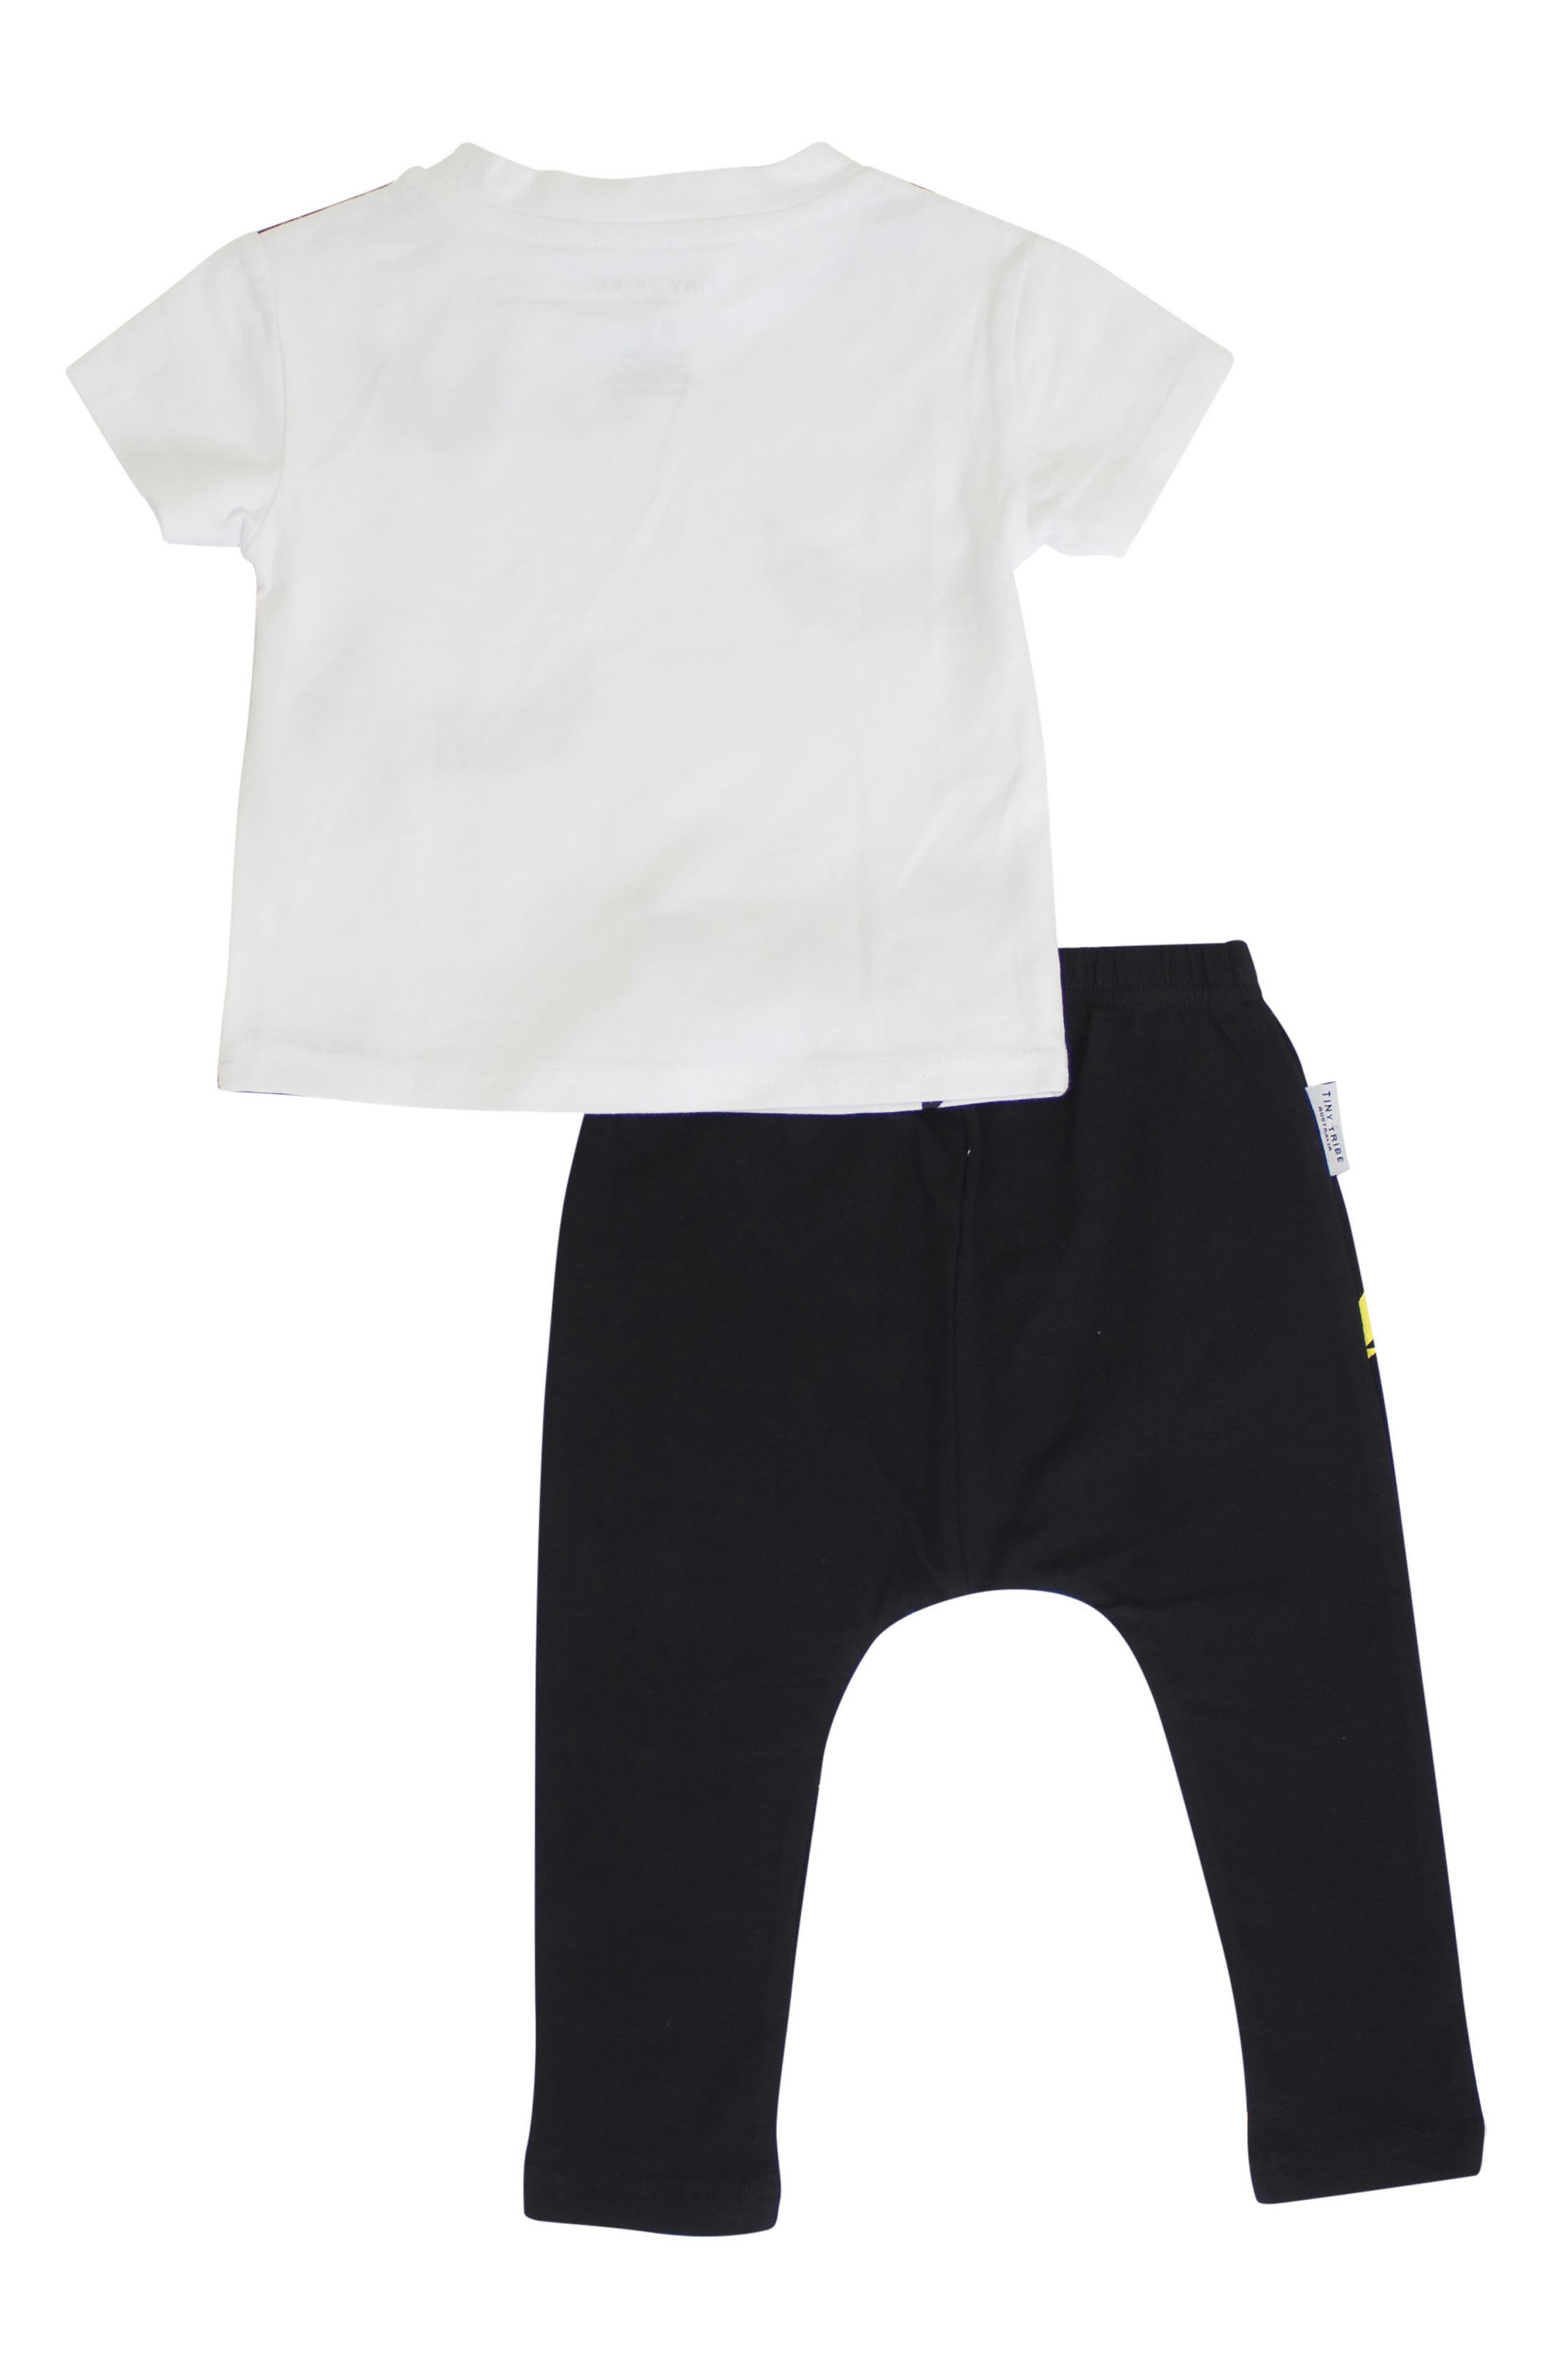 Bat Shirt & Leggings Set,                             Alternate thumbnail 2, color,                             White/ Black